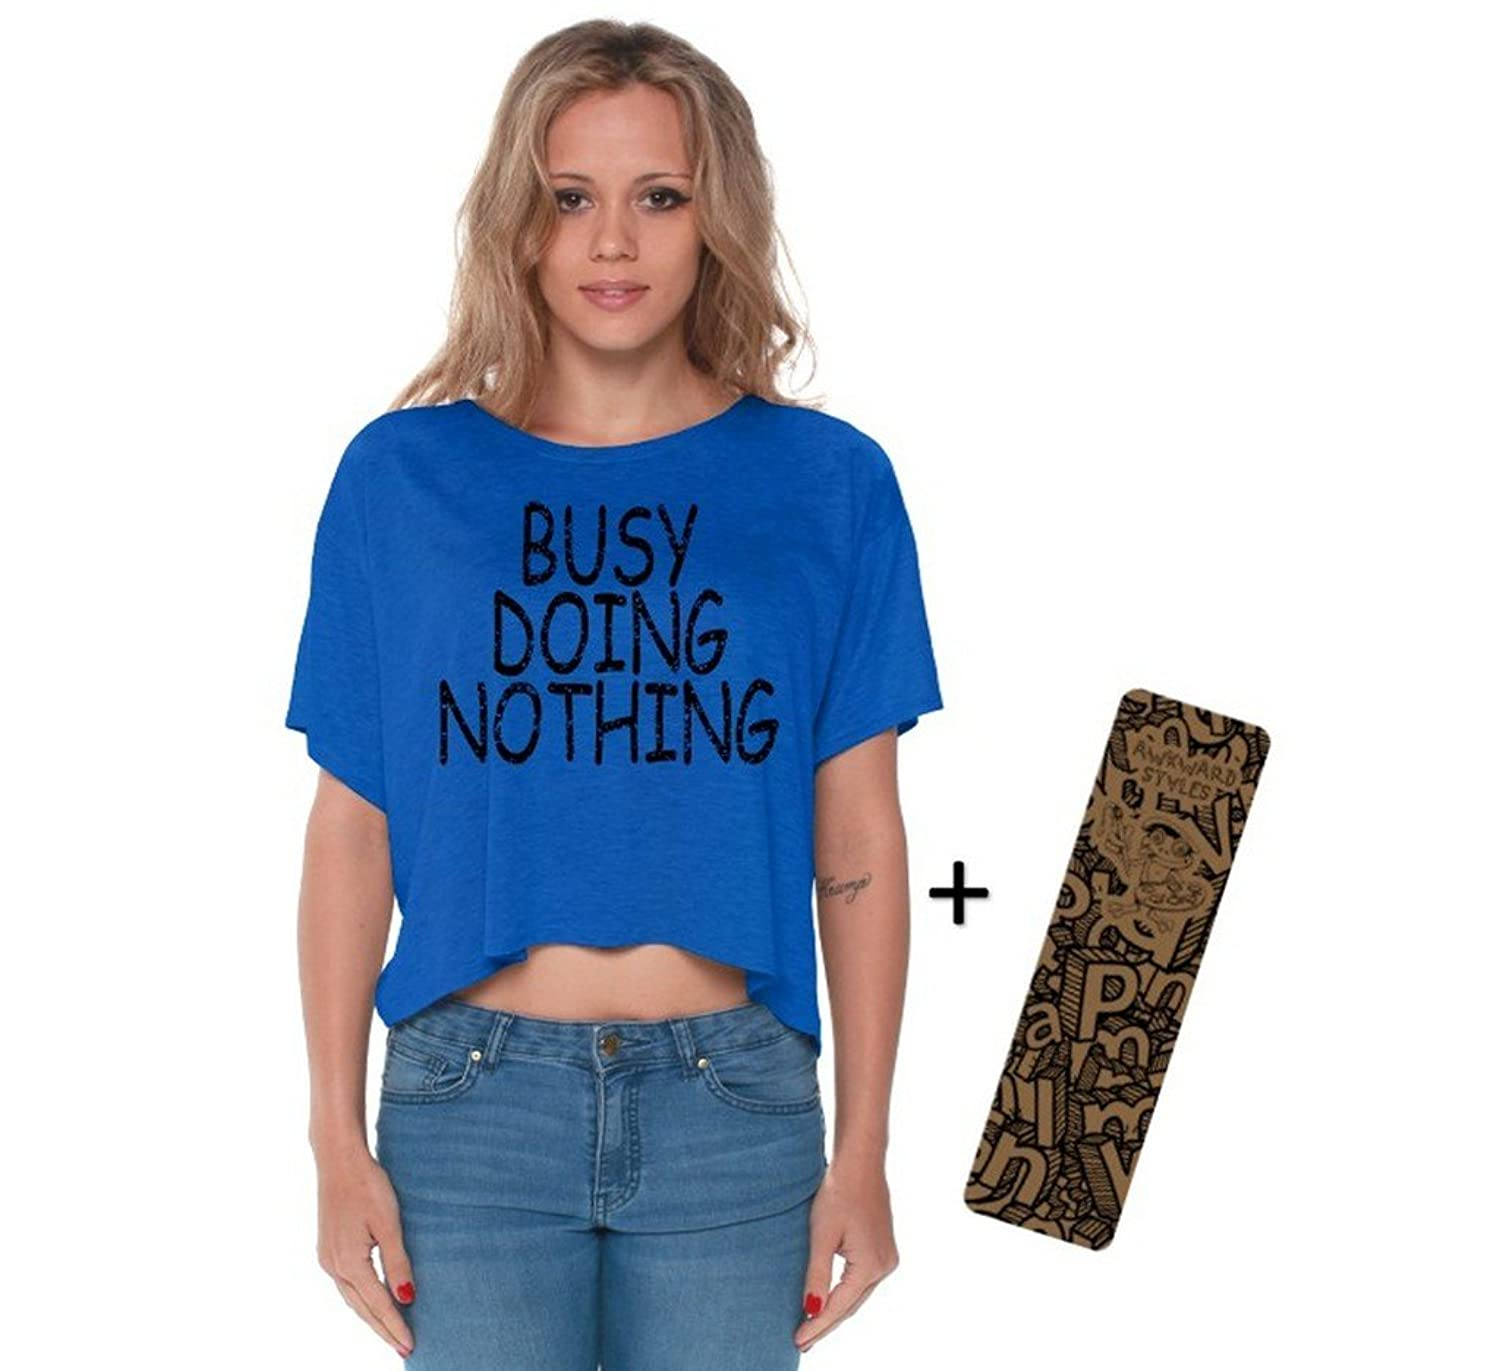 Awkwardstyles Busy Doing Nothing Boxy Crewneck Flowy Crop Top Black + Bookmark